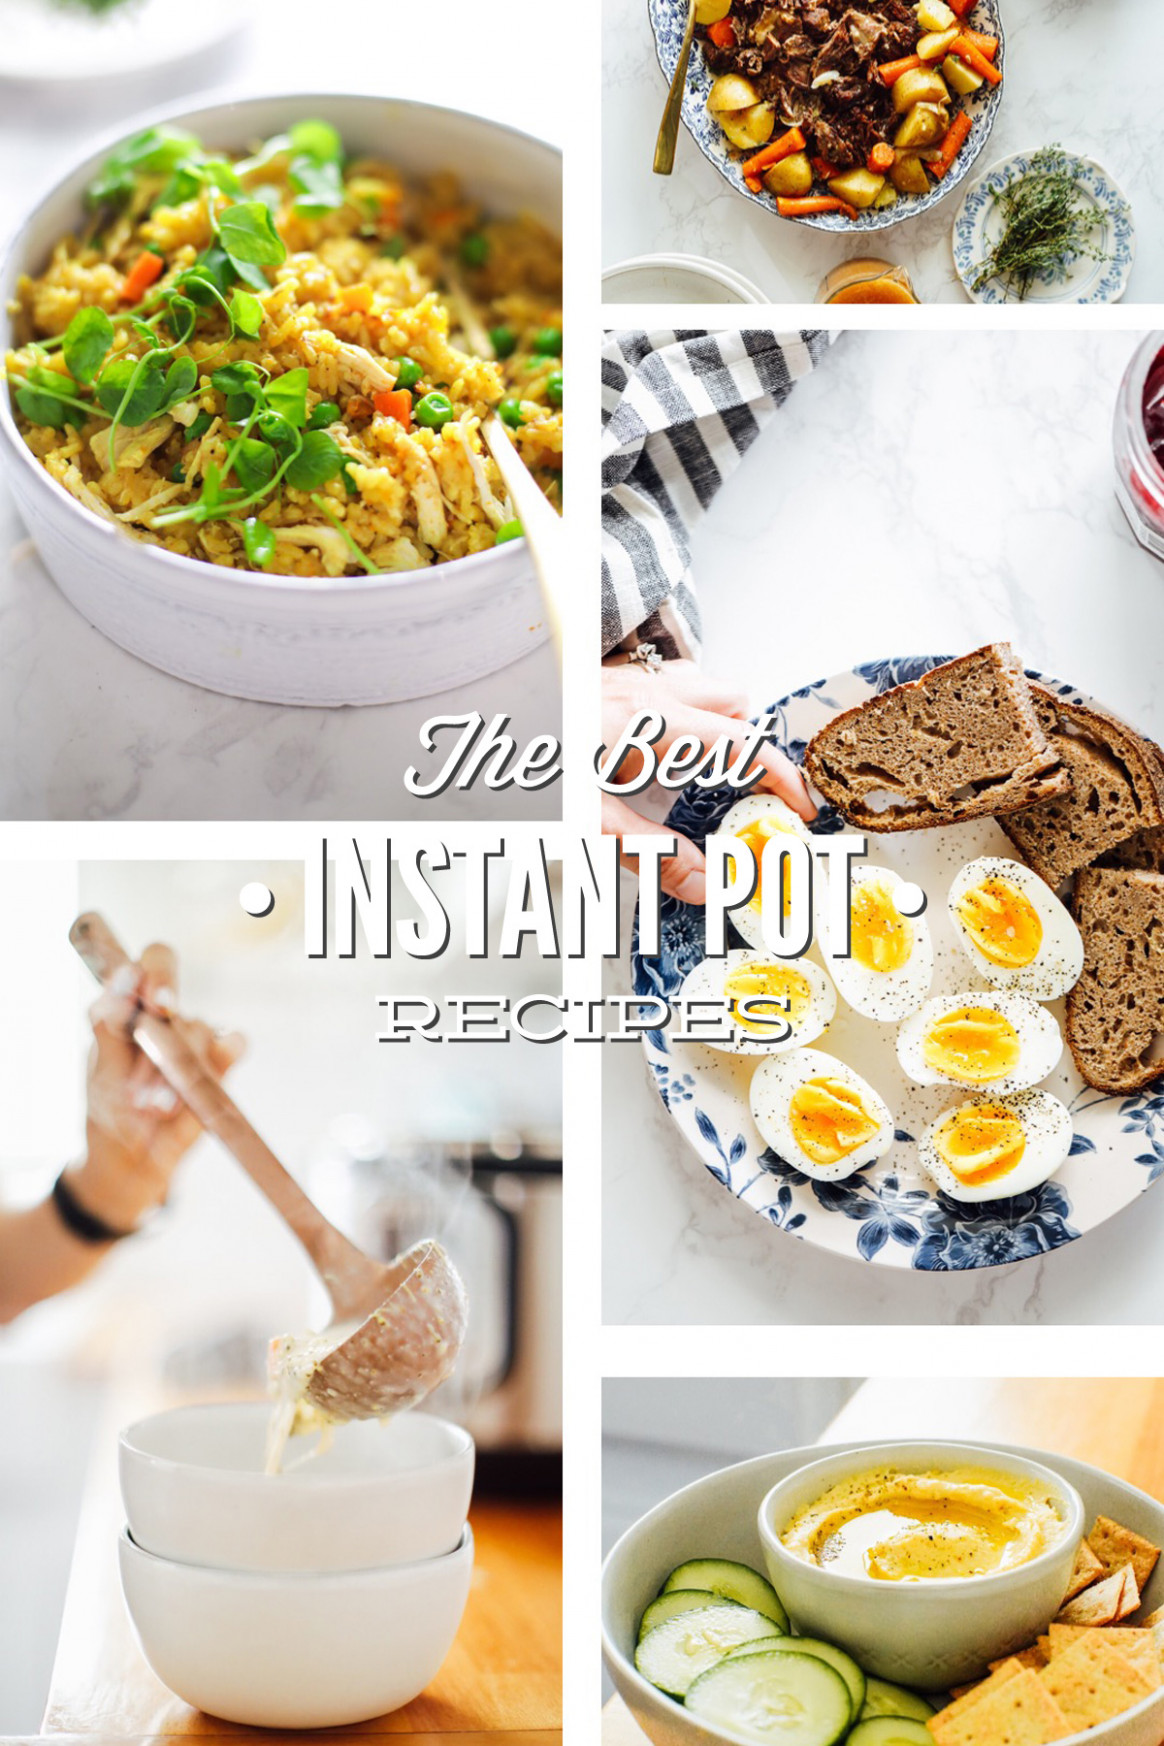 The Best Instant Pot Recipes (Healthy, Real Food) - Live Simply - recipes instant pot healthy